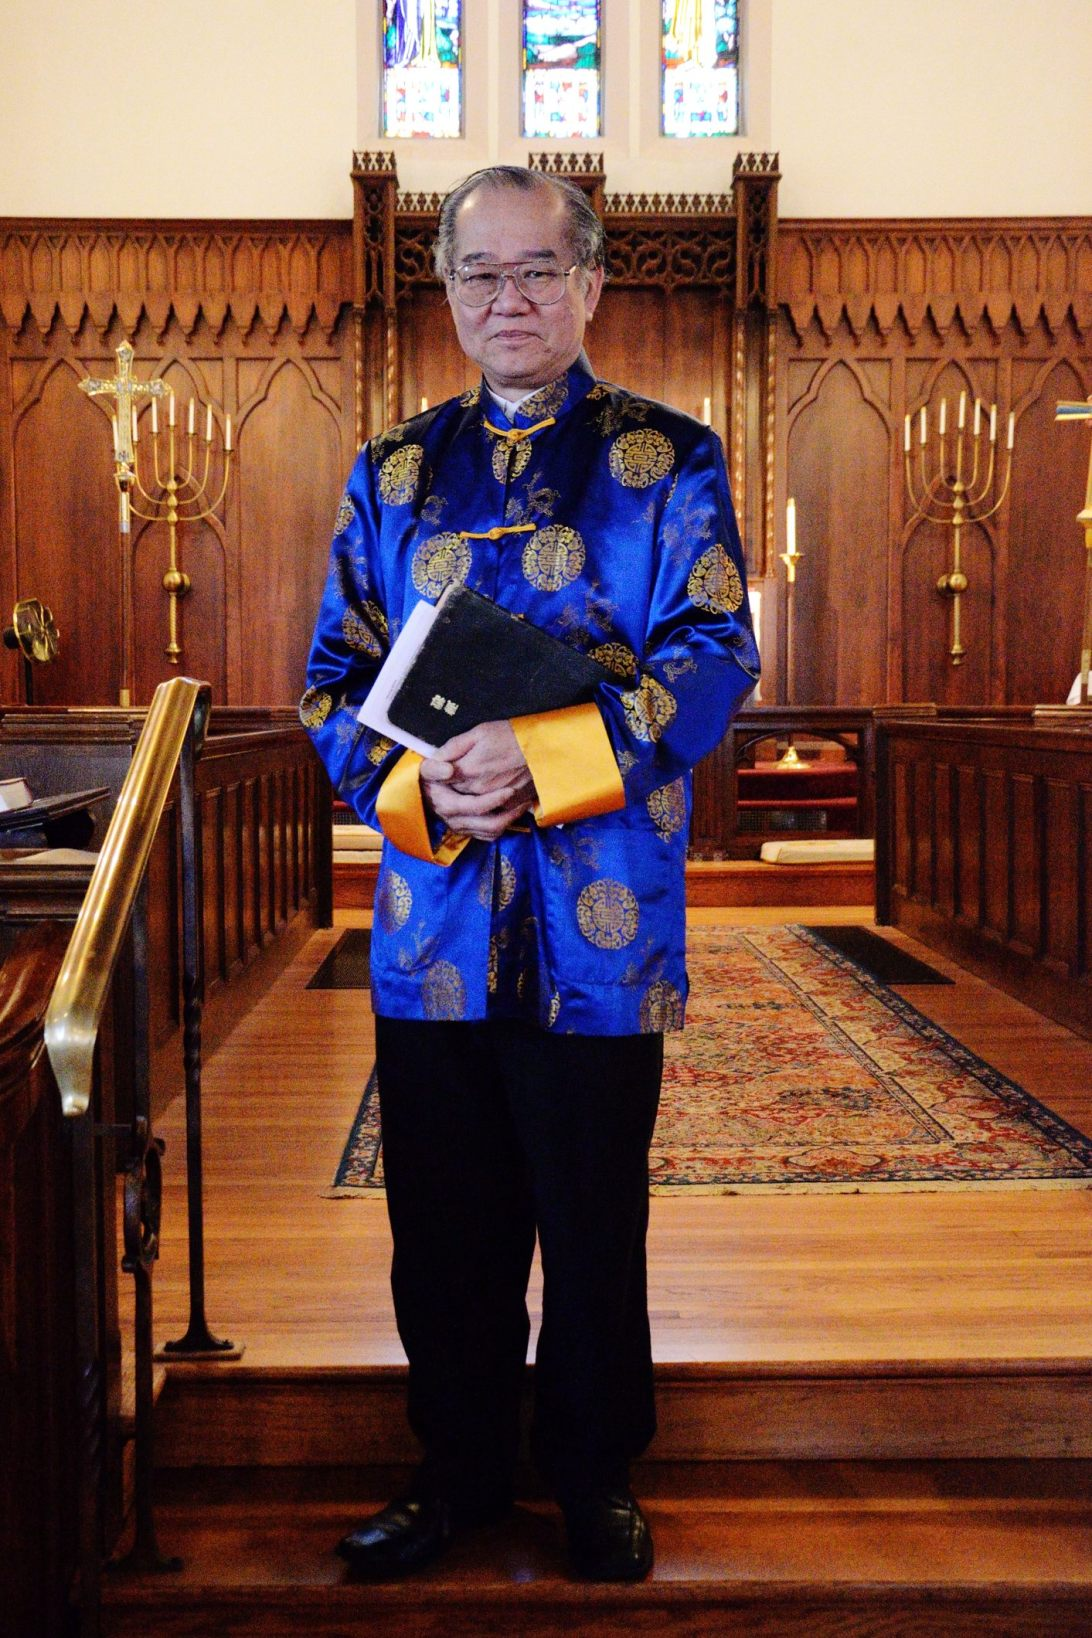 John dressed in a fine Chinese jacket for the Gospel reading. Anyone who has seen the vest I got married in will know why I liked John's jacket.